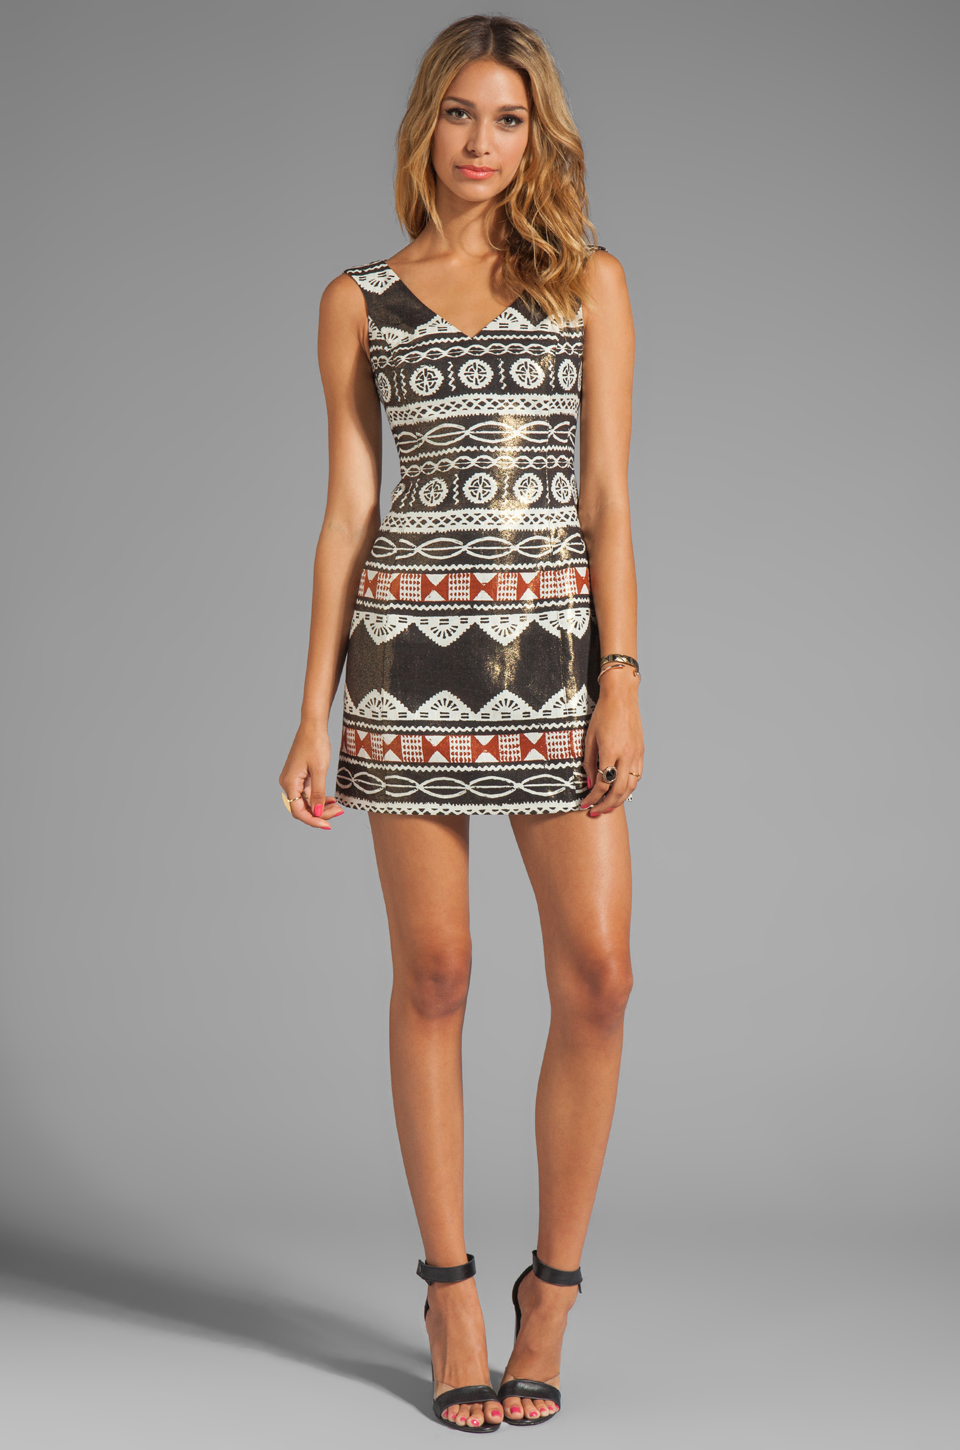 Nanette Lepore Aztec Linen Dress in Black Multi